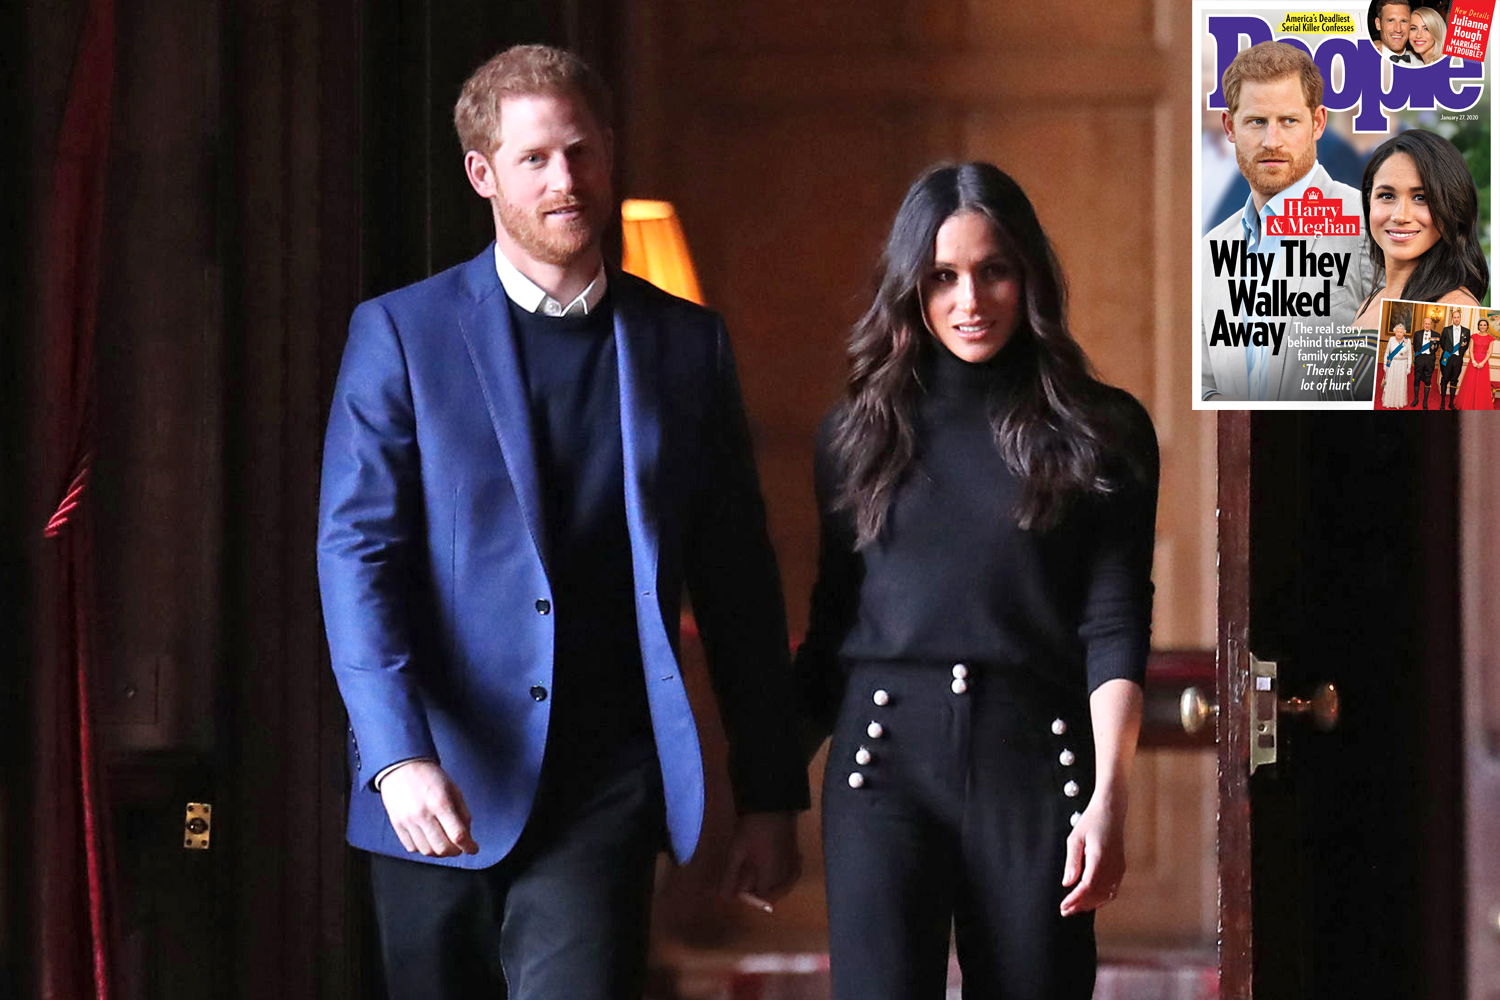 Prince Harry Meghan Markle People Magazine Cover